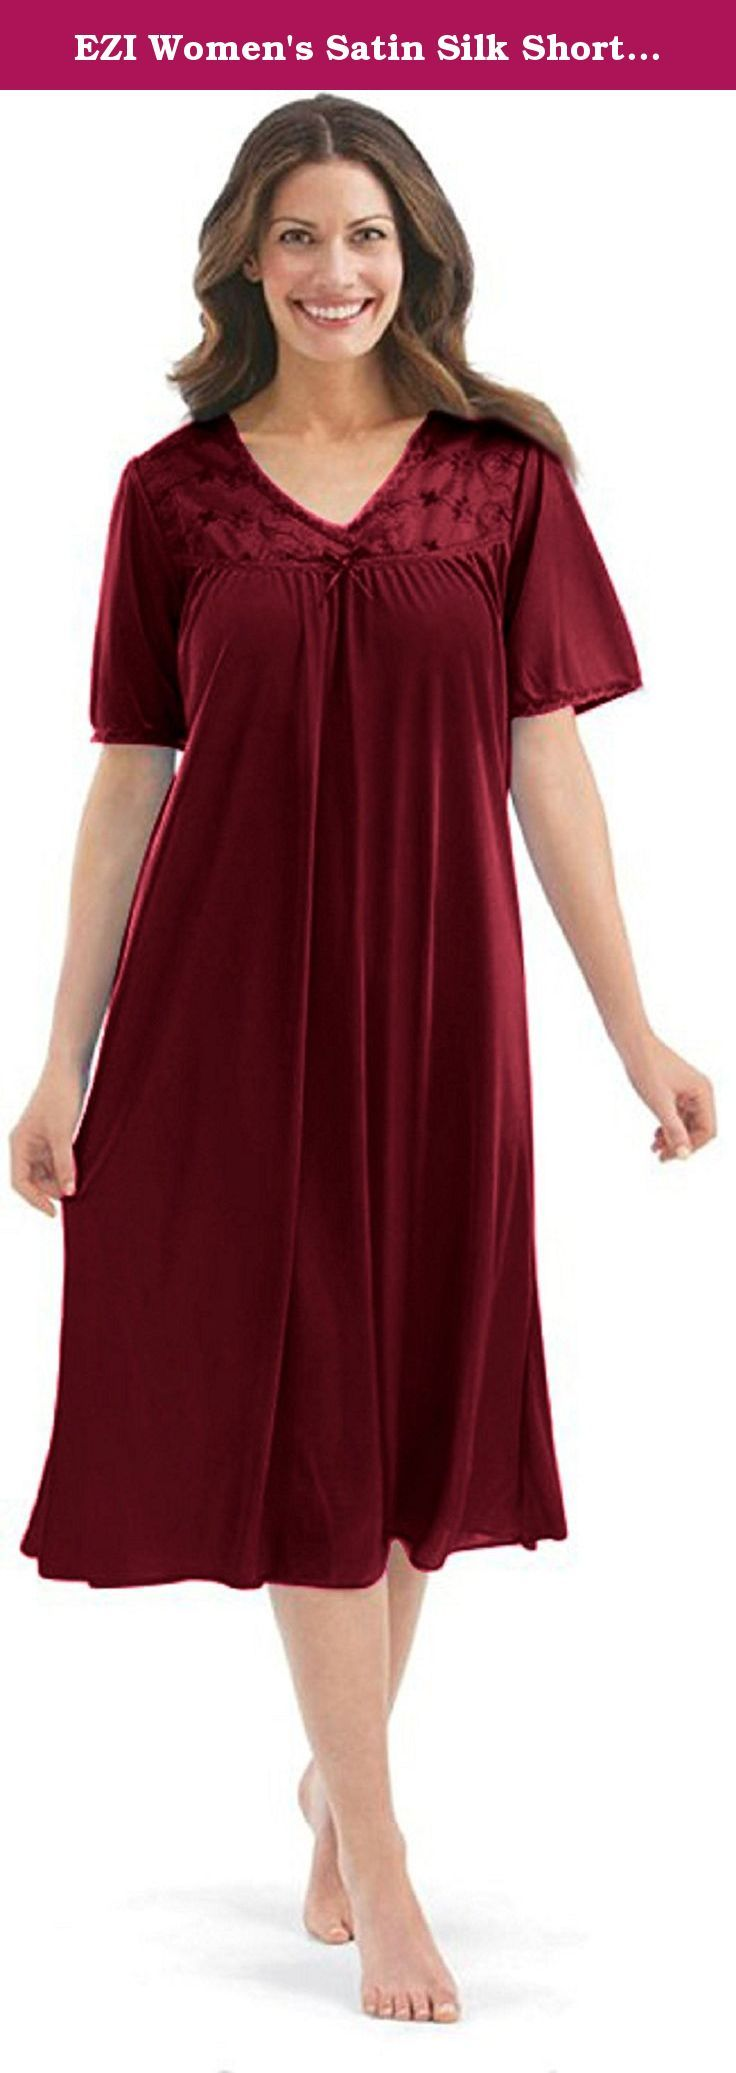 EZI Women's Satin Silk Short Sleeve Lingerie ,Red,XL. This Satin Silk Womens Short Sleeve nightgown will make you look great. The lightweight Satin Silk material, keeps you cool and will provide a faltering fit for any size women. Lace Detailing near the bust/neckline gives a sexy touch. Available in Regular & Plus Size.